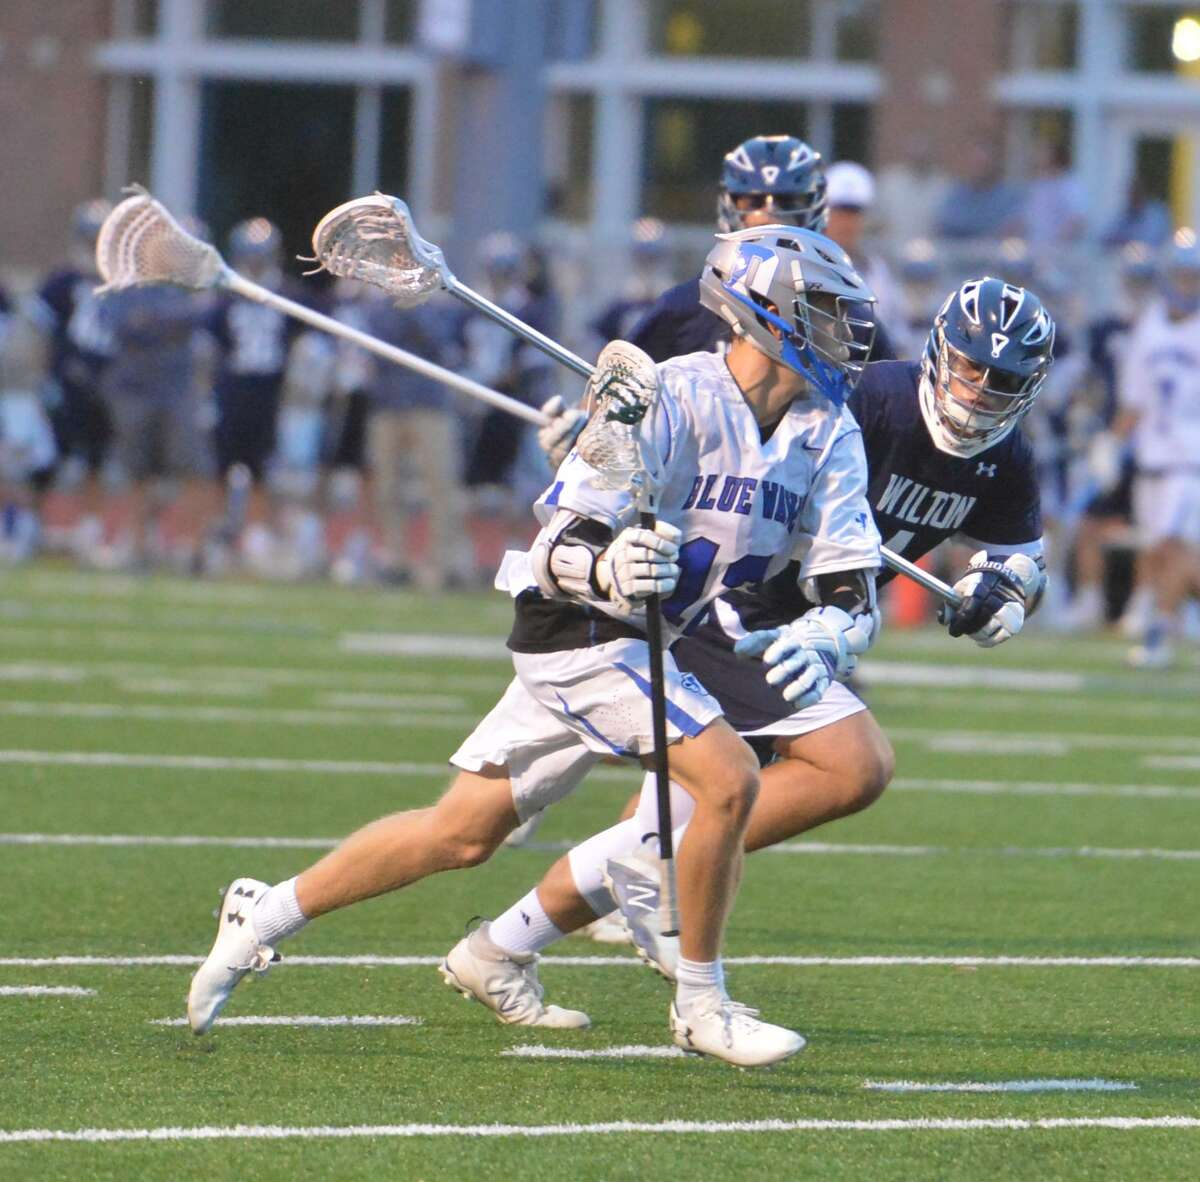 Darien's #12 Kevin Lindley moves in for a shot on goal vs. Wilton during FCIAC Boys Lacrosse semifinal game Tuesday May 23, 2017 in Norwalk Conn.